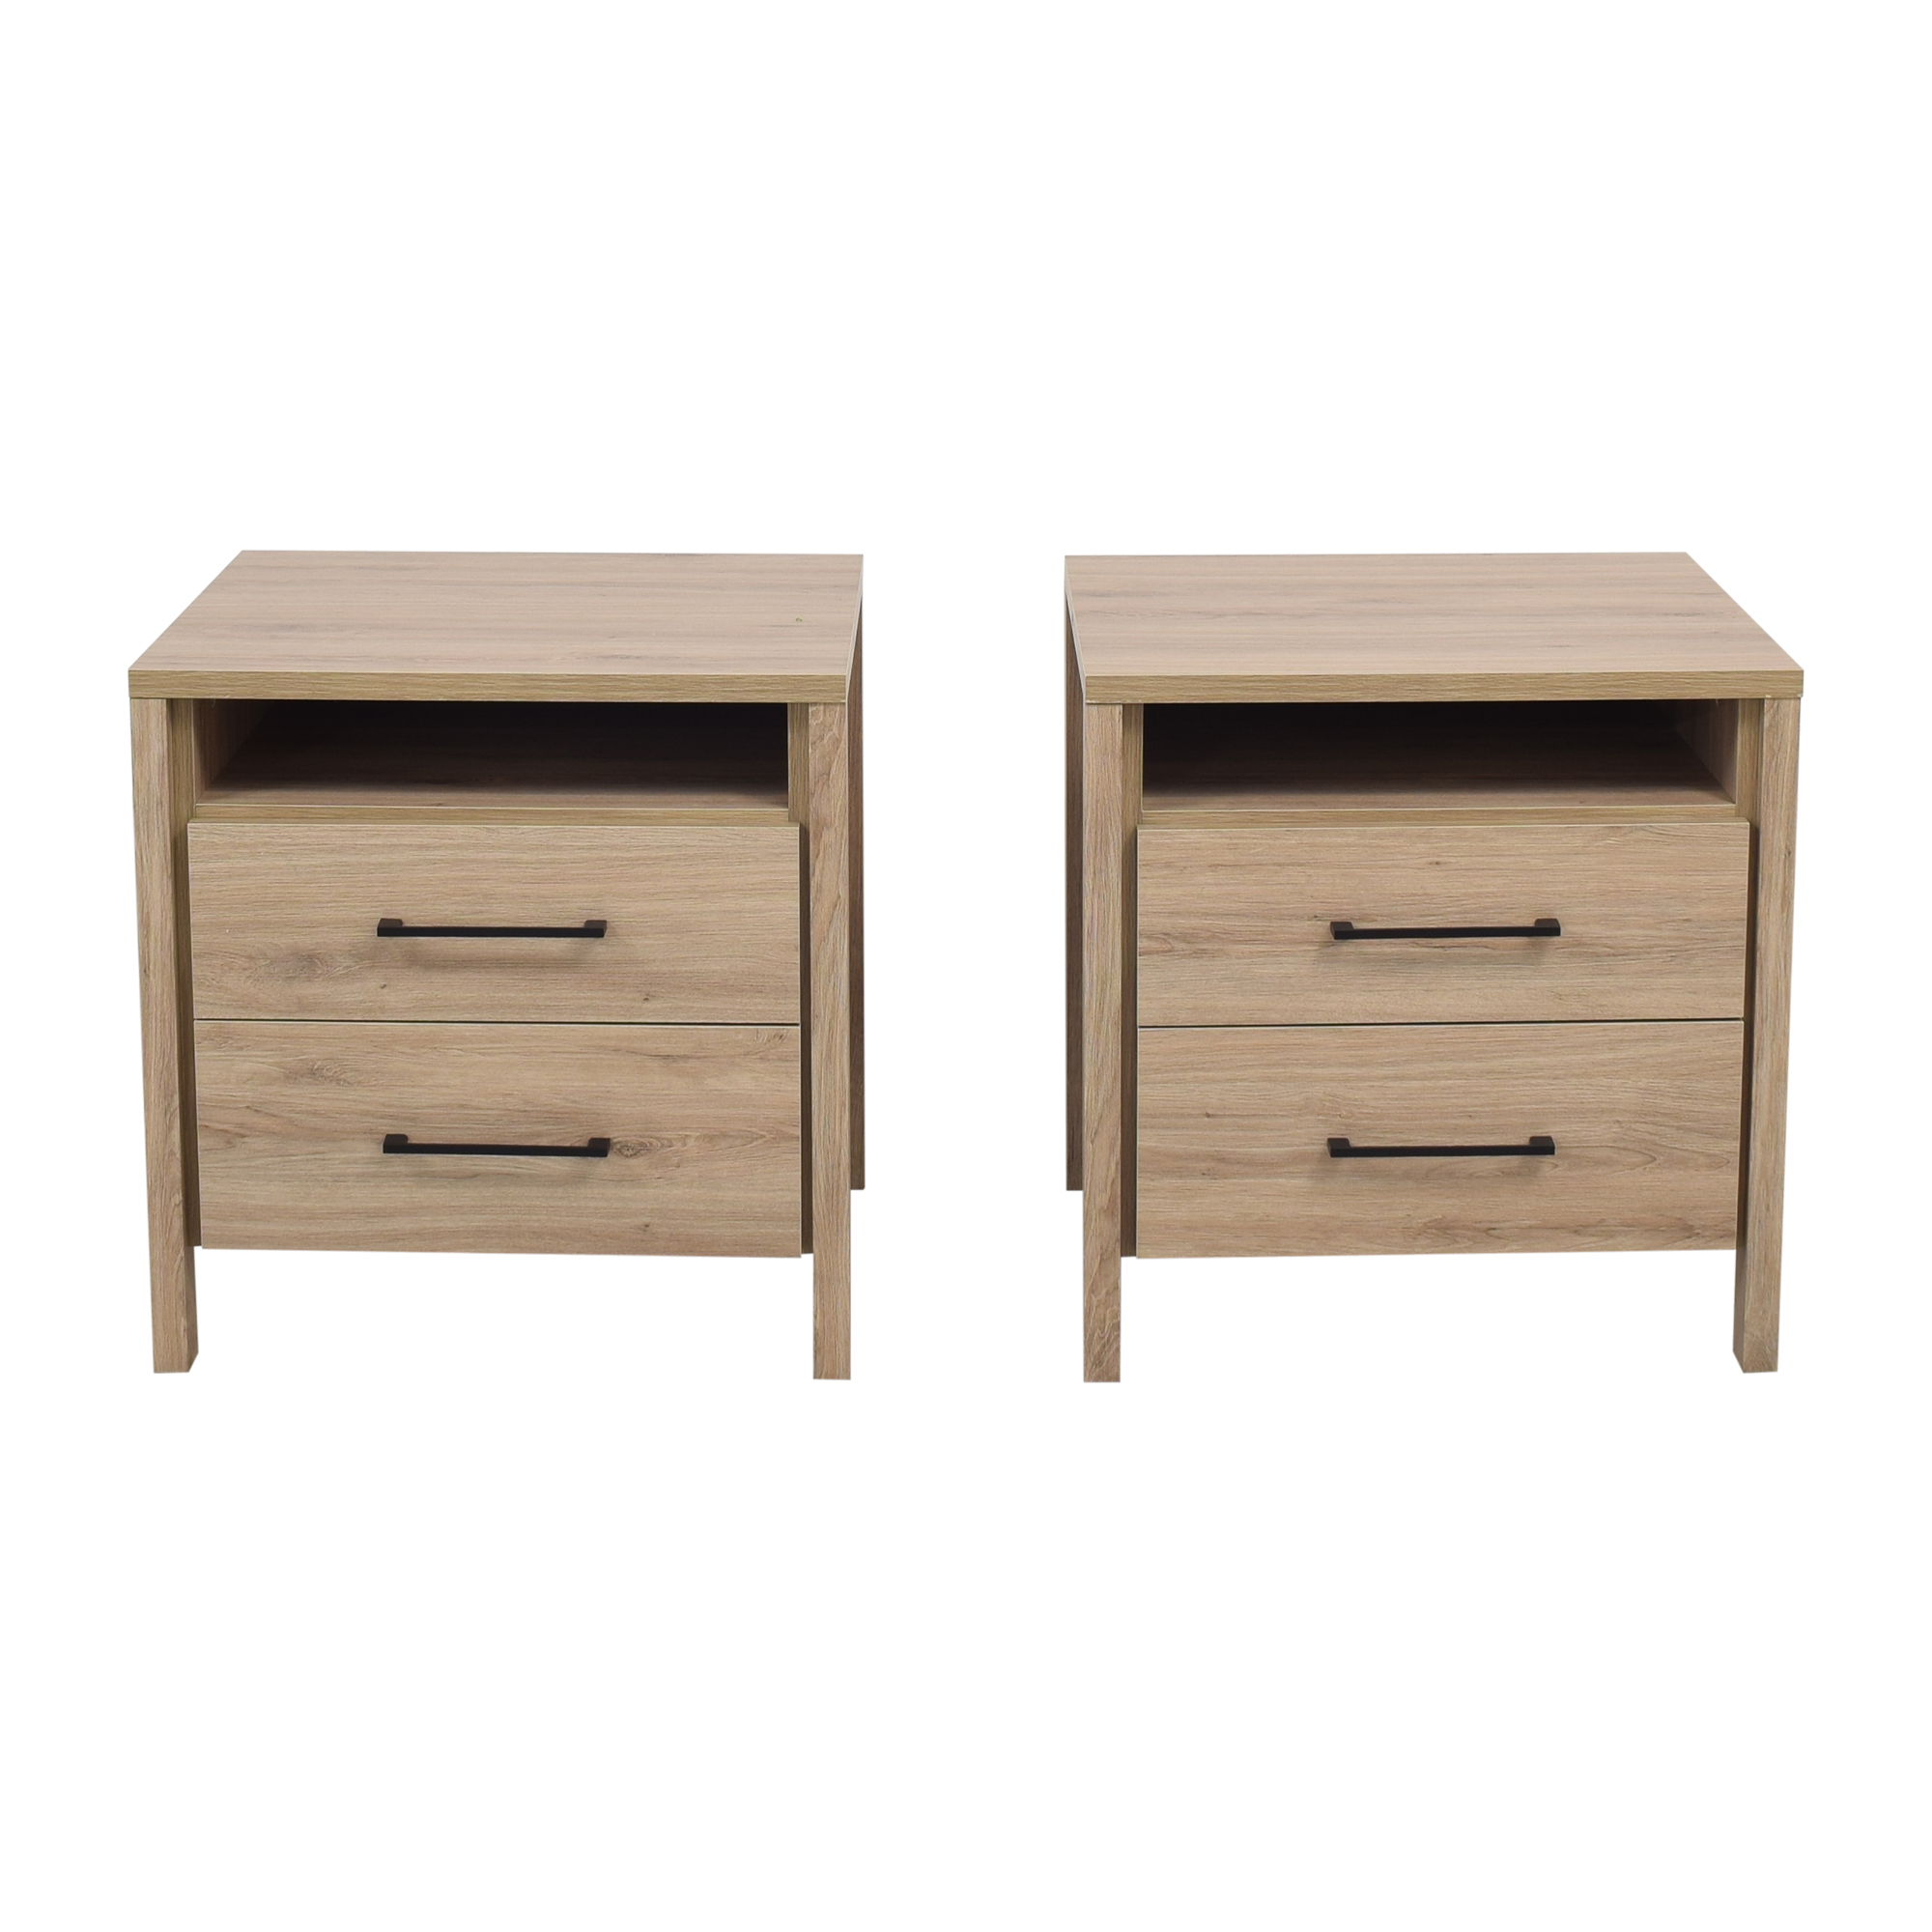 shop Macy's Gatlin End Table Nightstands Macy's